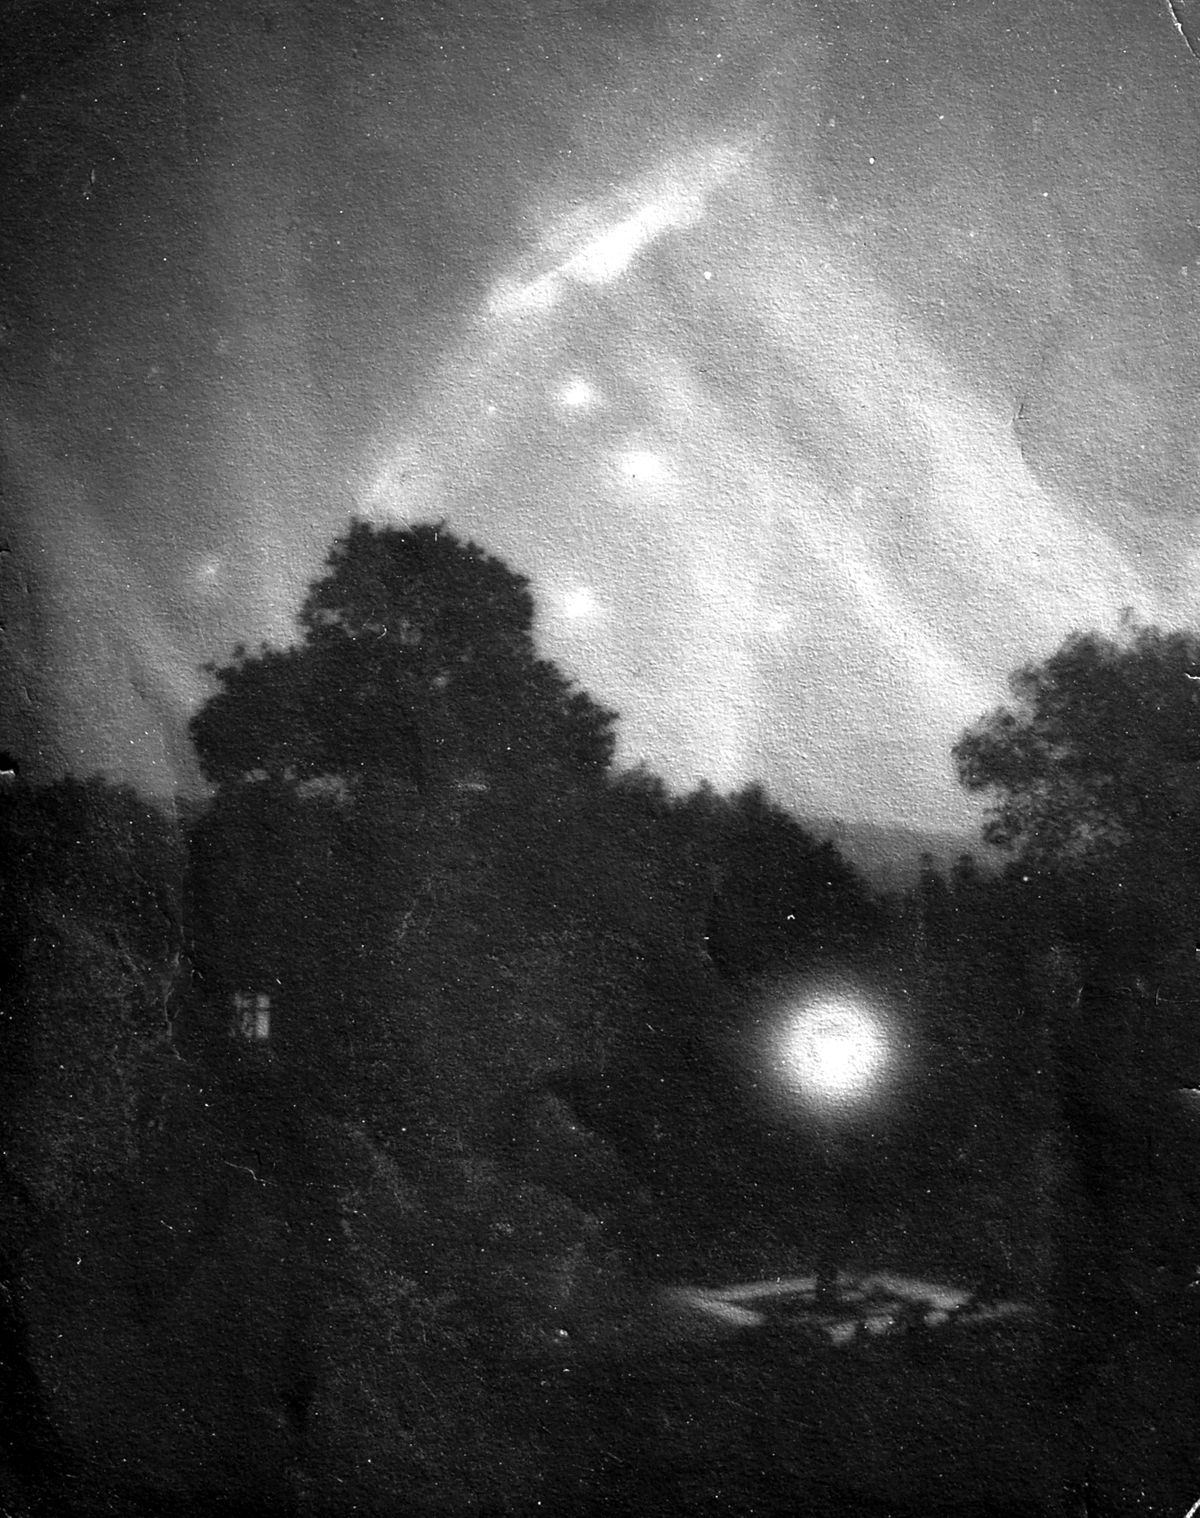 This is claimed to show a Zeppelin caught in searchlights over Shrewsbury.